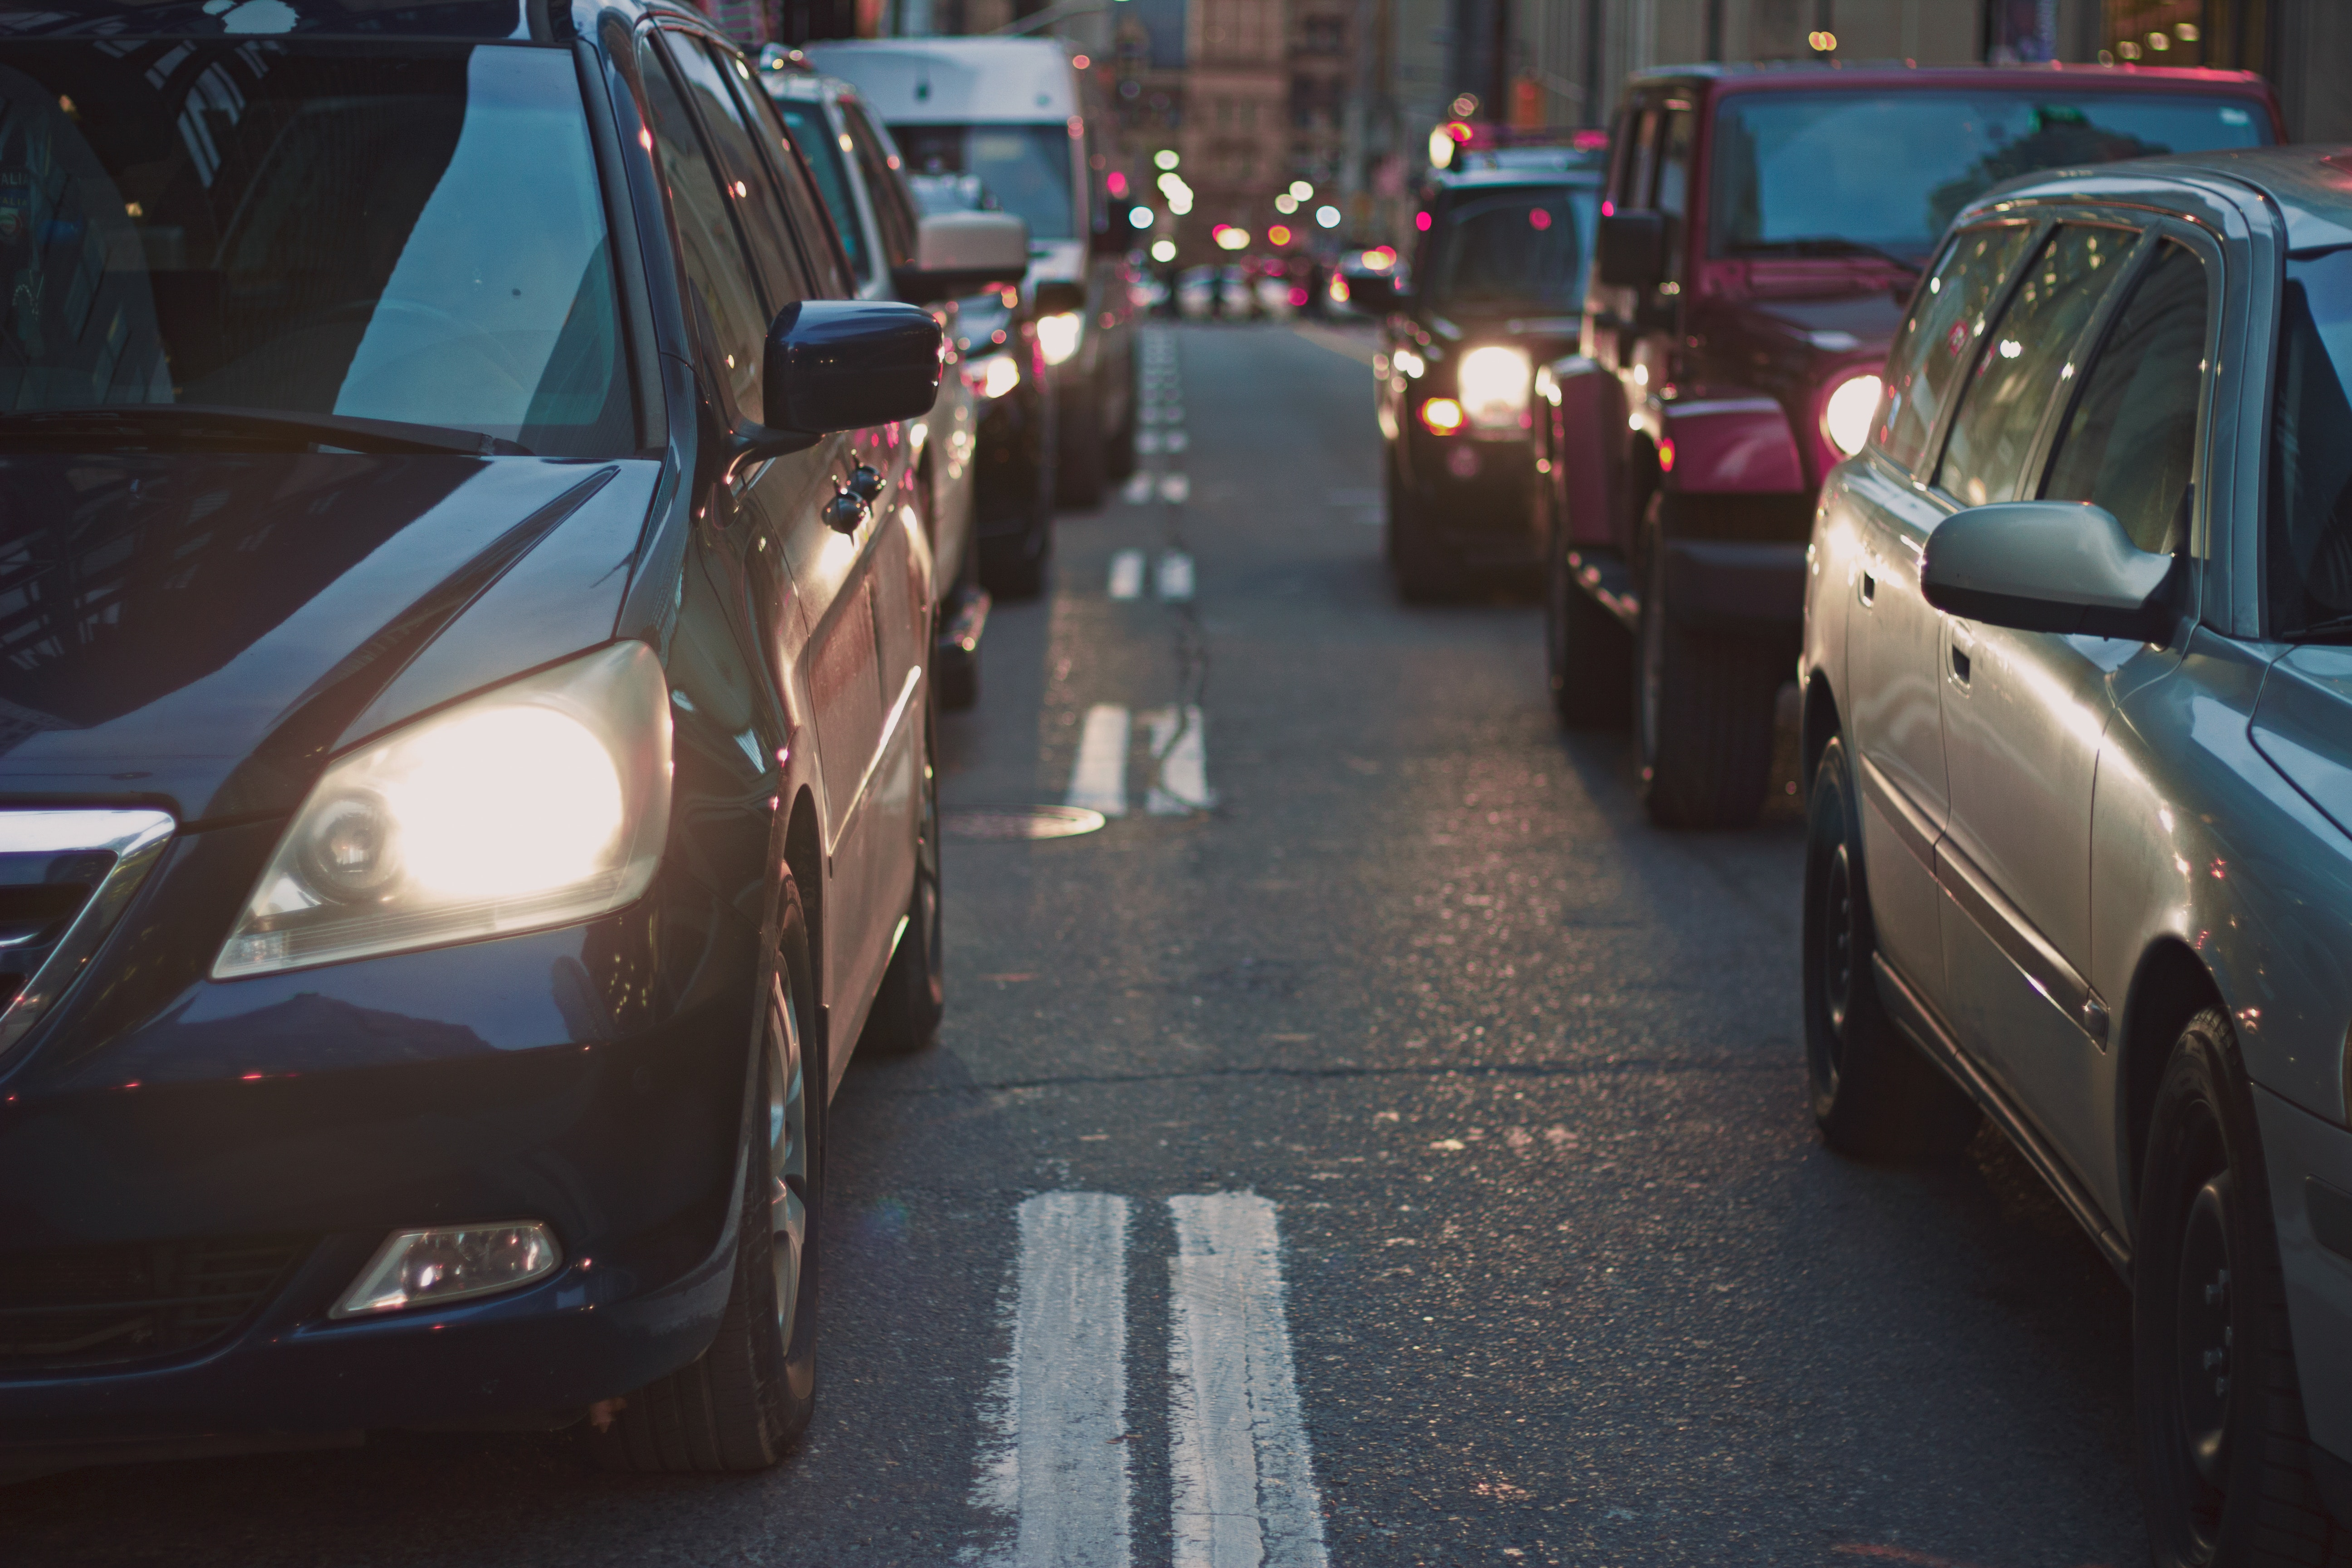 cars-congestion-street-7674